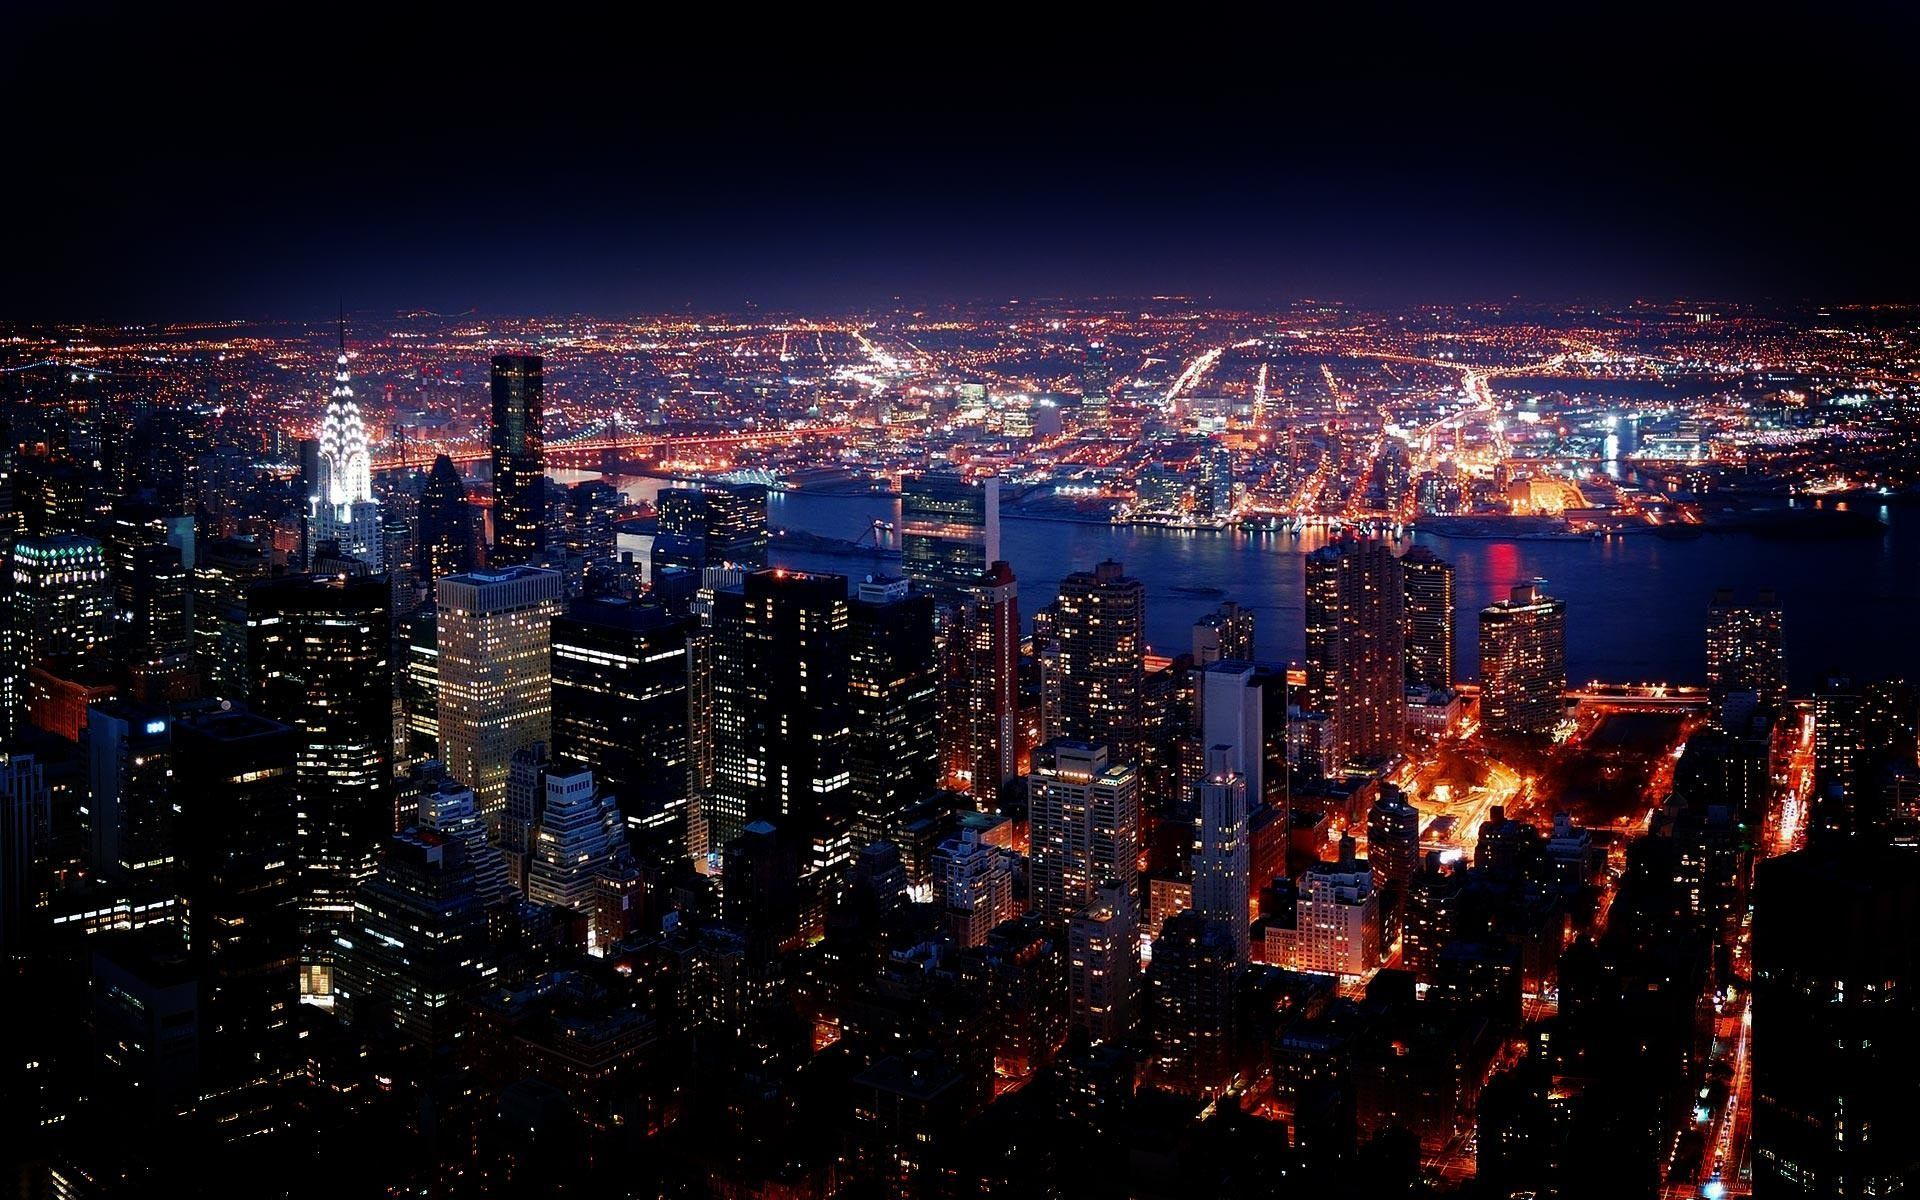 New York City Night View Hd Wallpaper In High Resolution For Desktop Amp Mobile We Have Best Collectio New York Wallpaper New York City Night York Wallpaper Hd wallpaper city night snow aerial